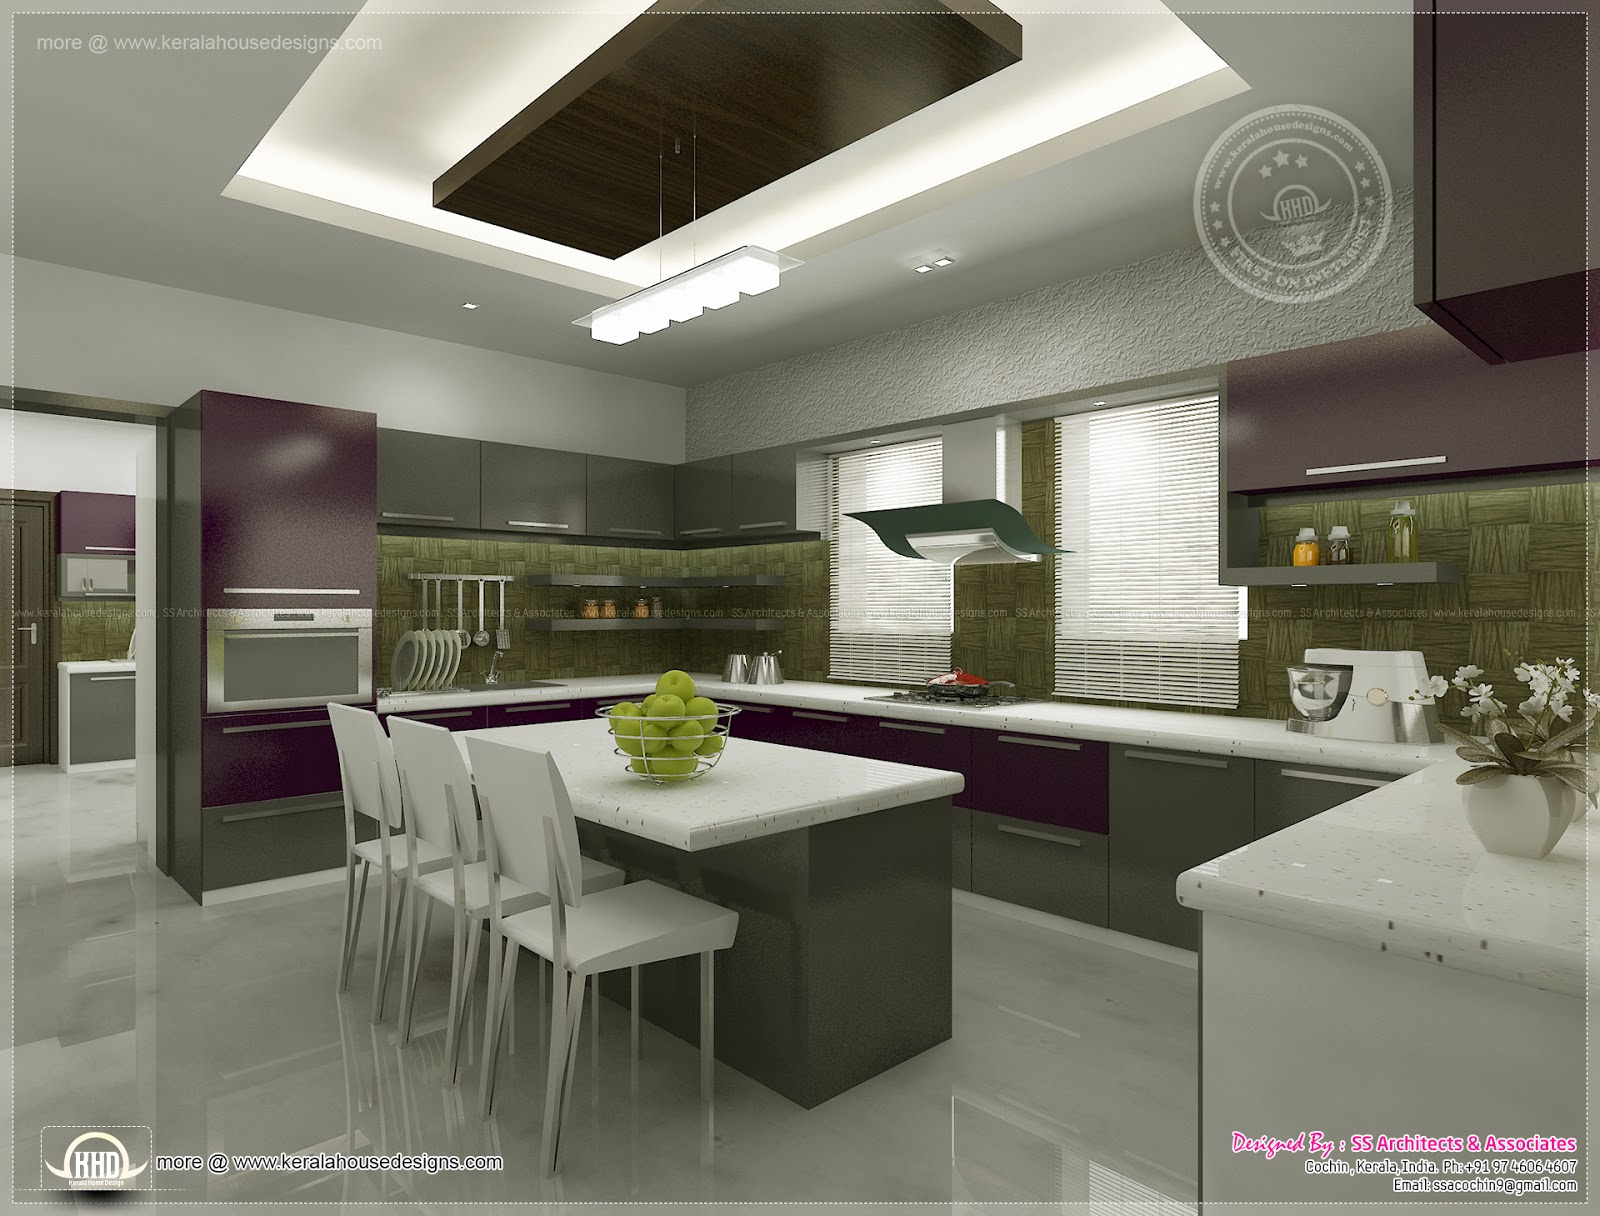 kitchen interior design photos kitchen interior views by ss architects cochin kerala 814